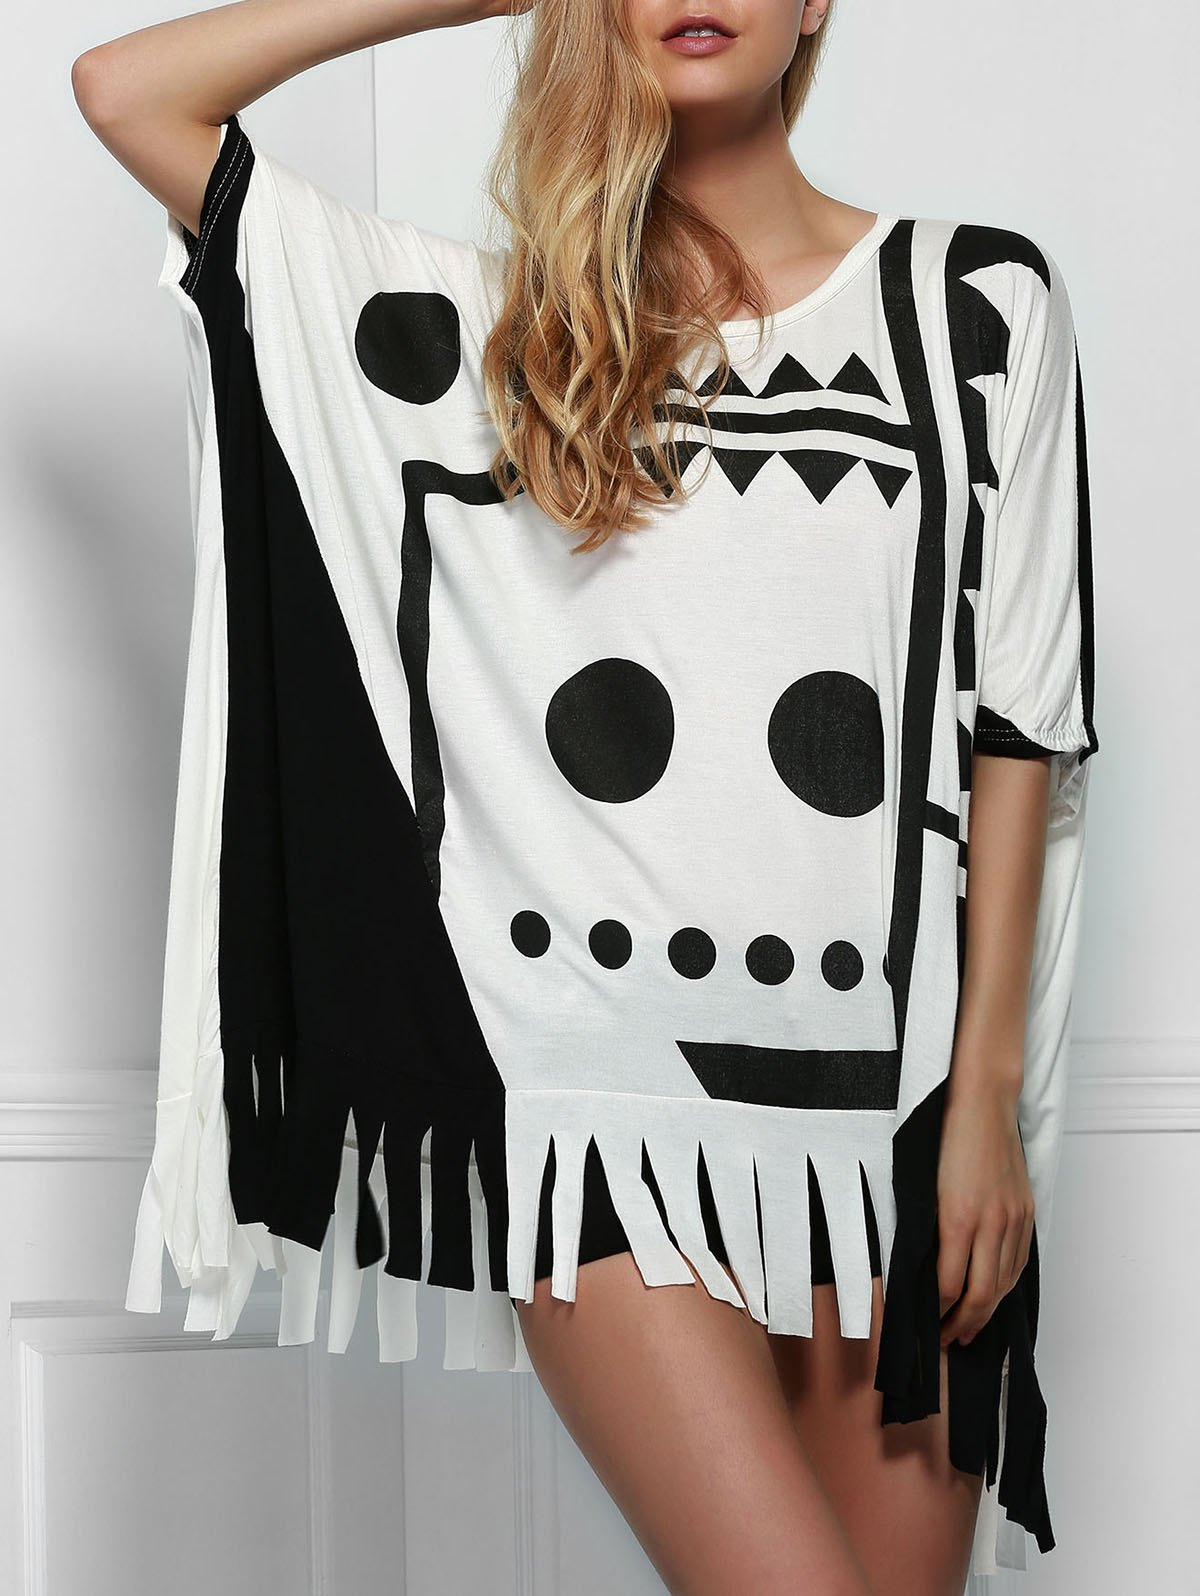 Stylish Scoop Neck Batwing Sleeve Printed Fringed Women's T-Shirt